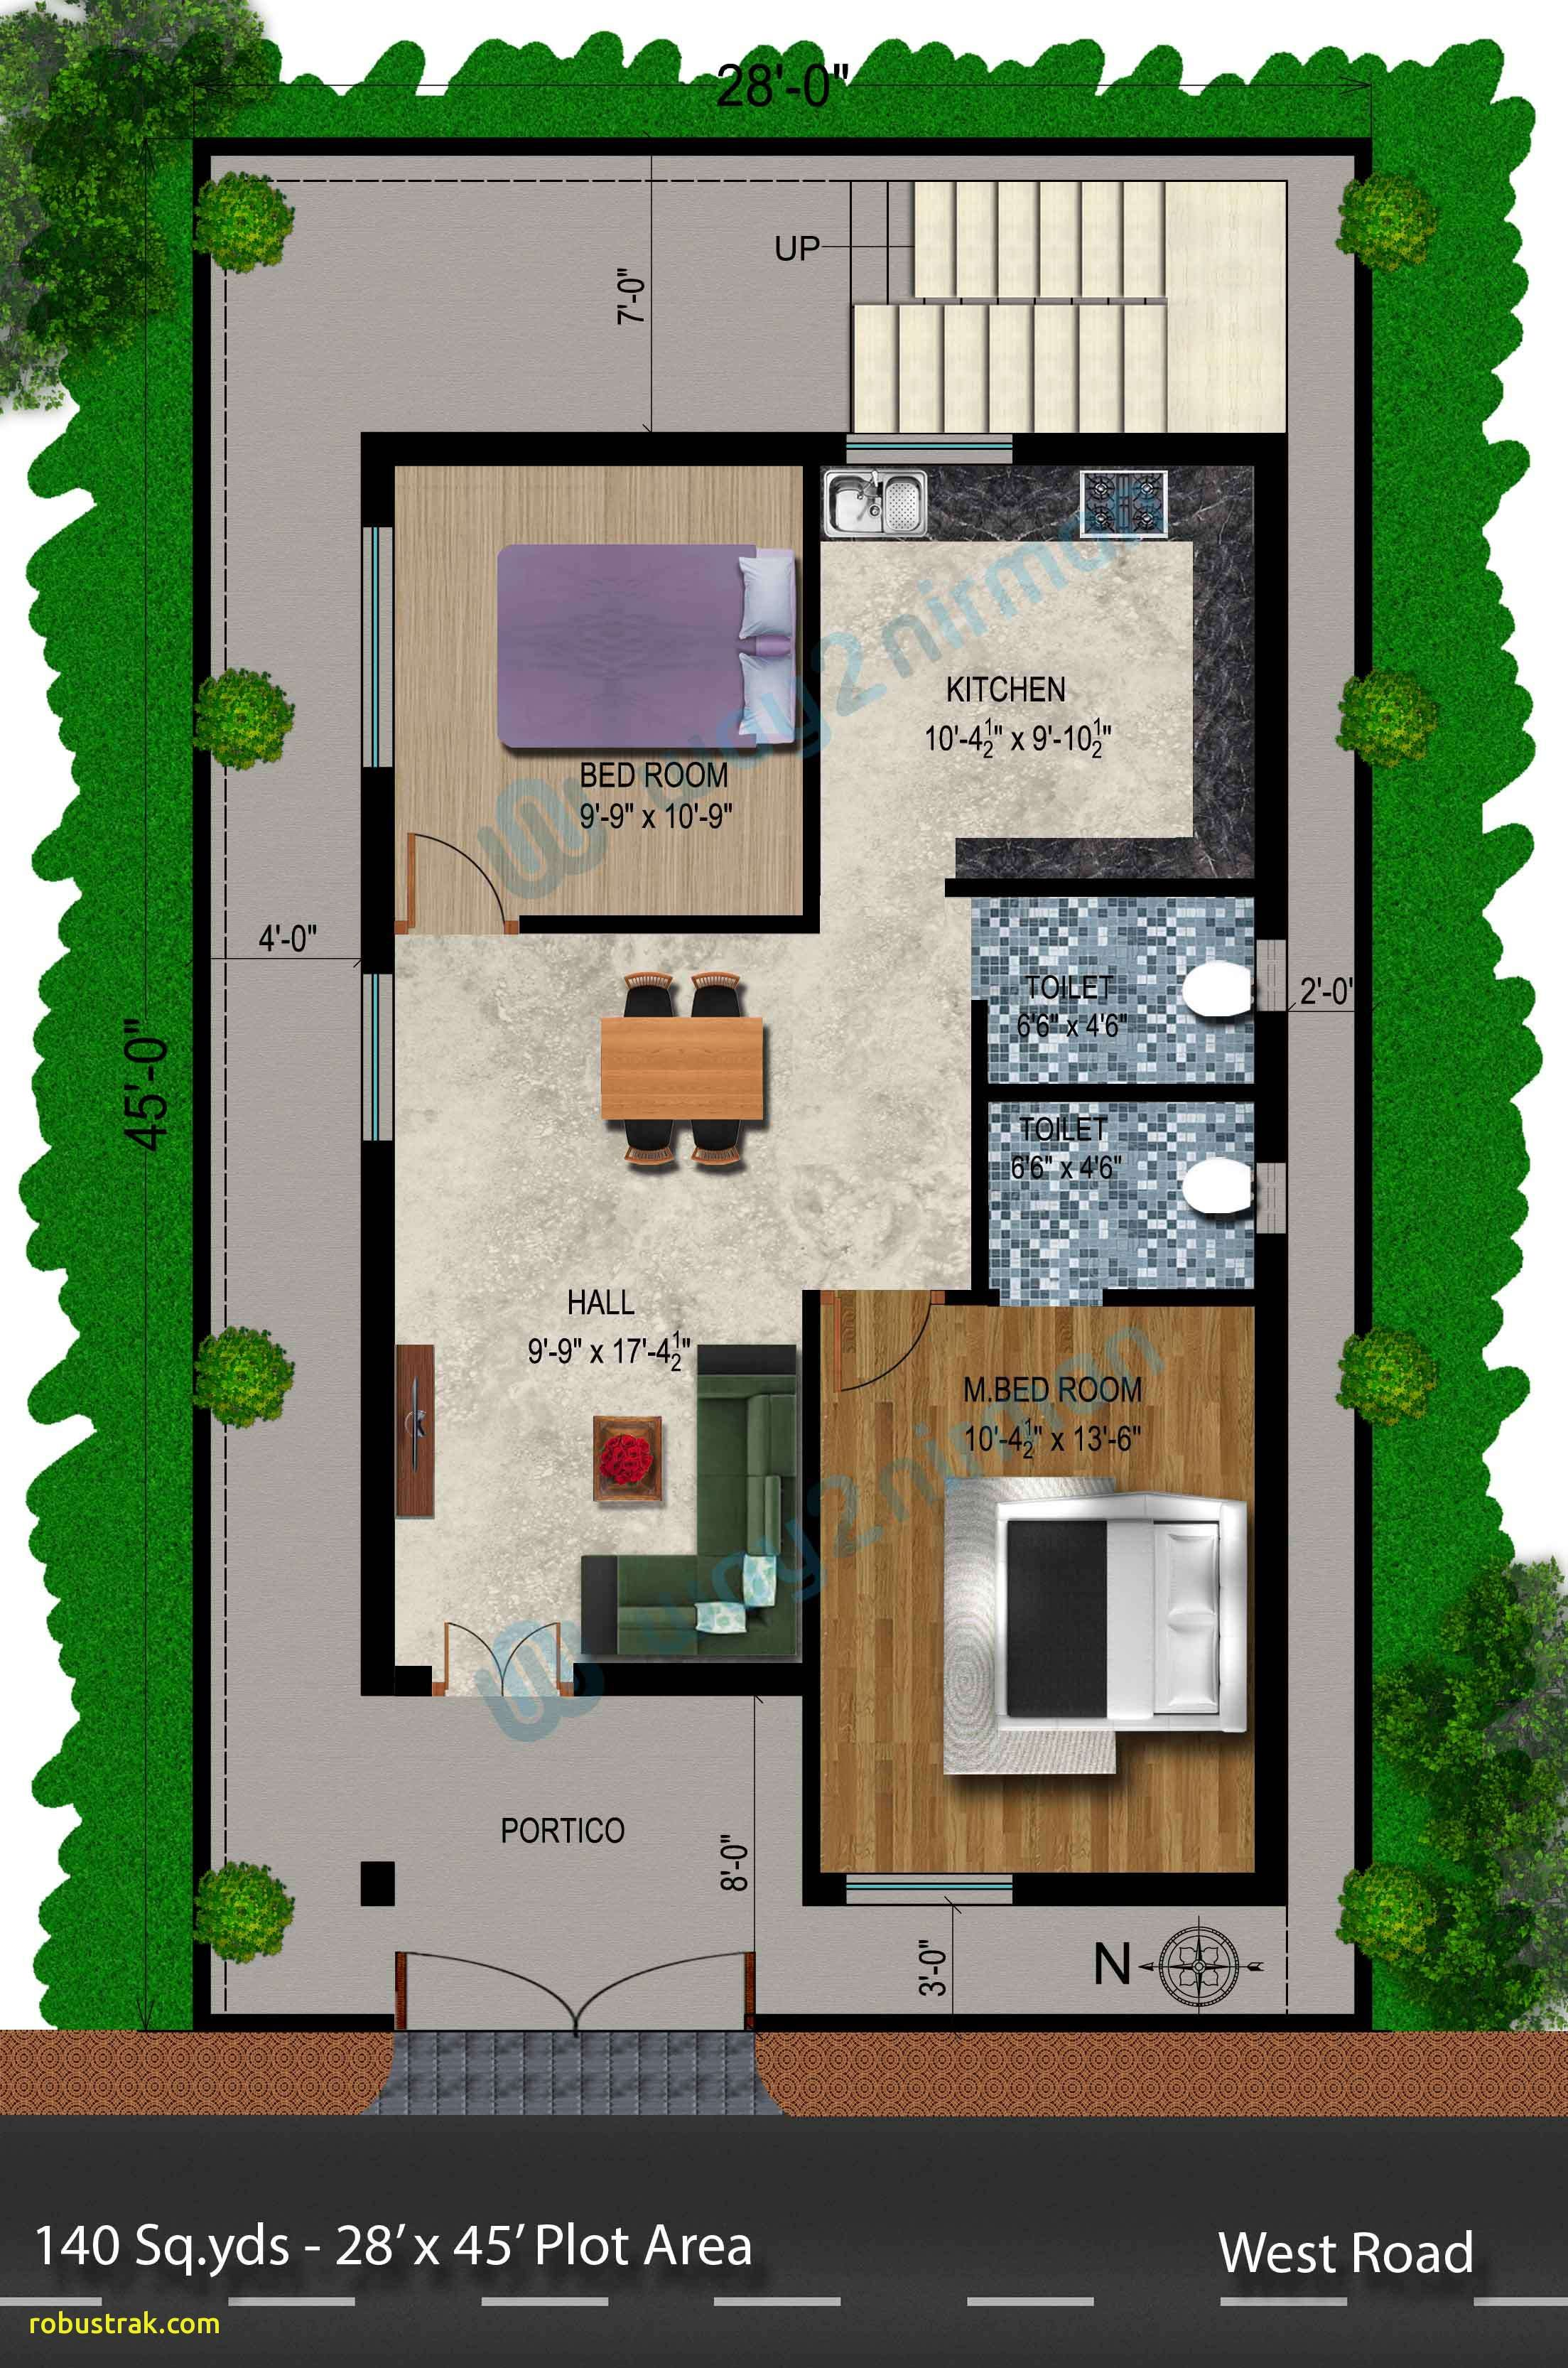 Bhk Small House Design Inspirations Including Service Renovation West Facing House Duplex House Plans 2bhk House Plan